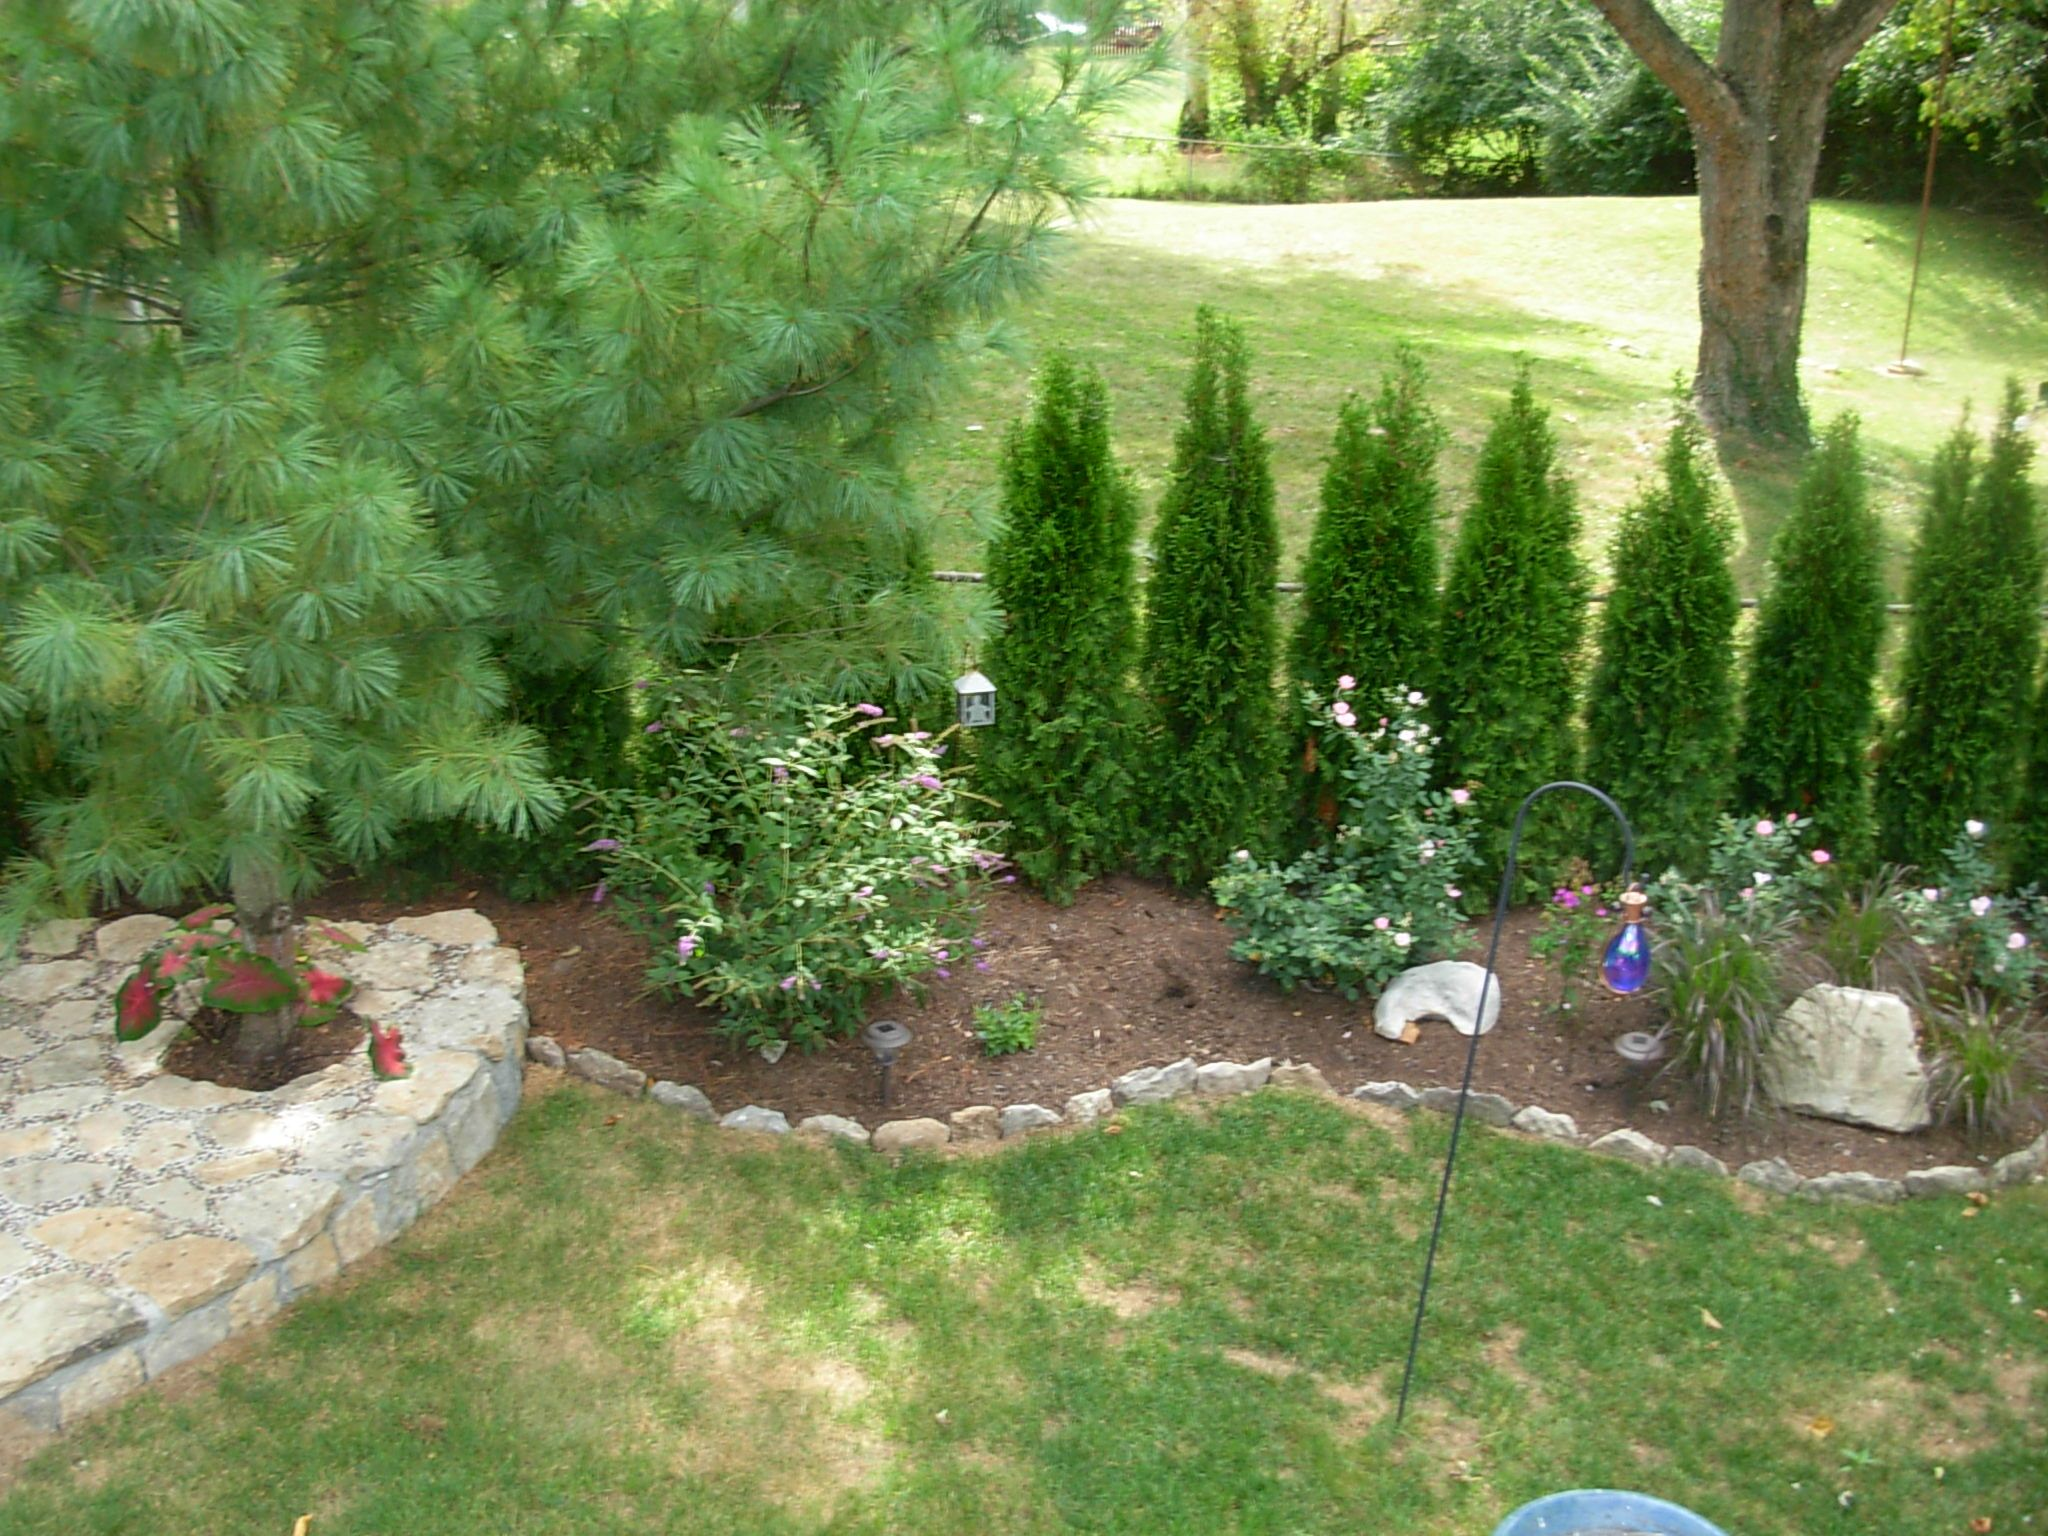 Trees For Privacy, Mulching And Plants Between Property Line And